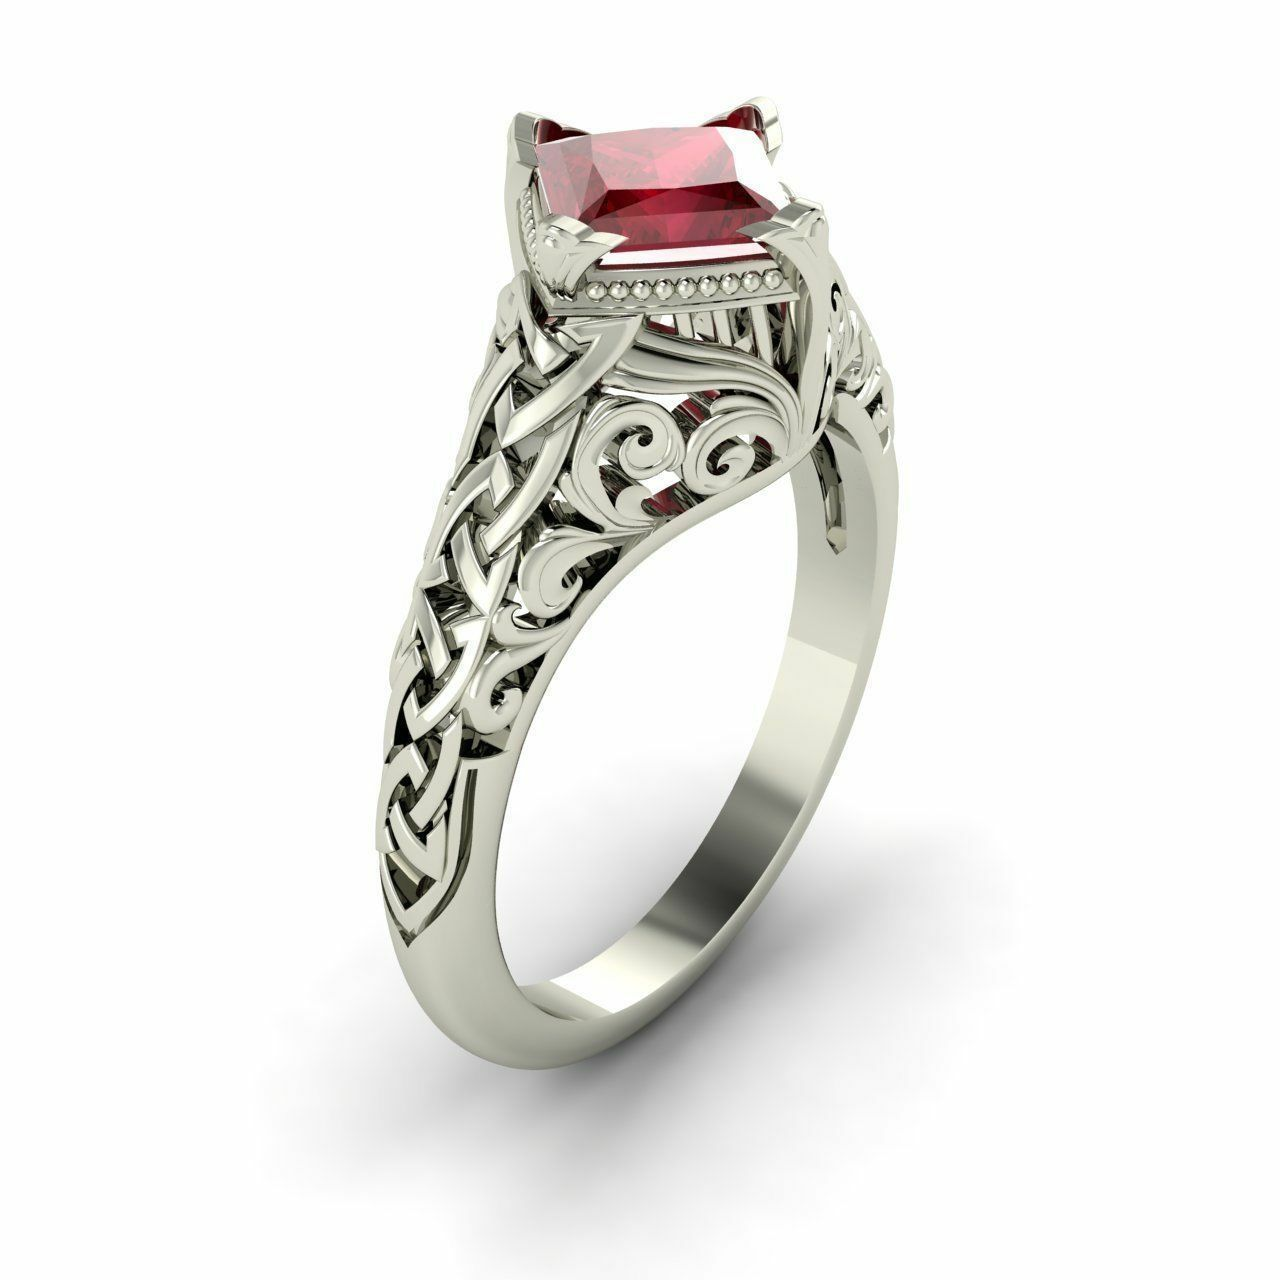 Certified 0.65 Cts Princess-Cut Natural Ruby Vintage Solitaire Engagement Ring